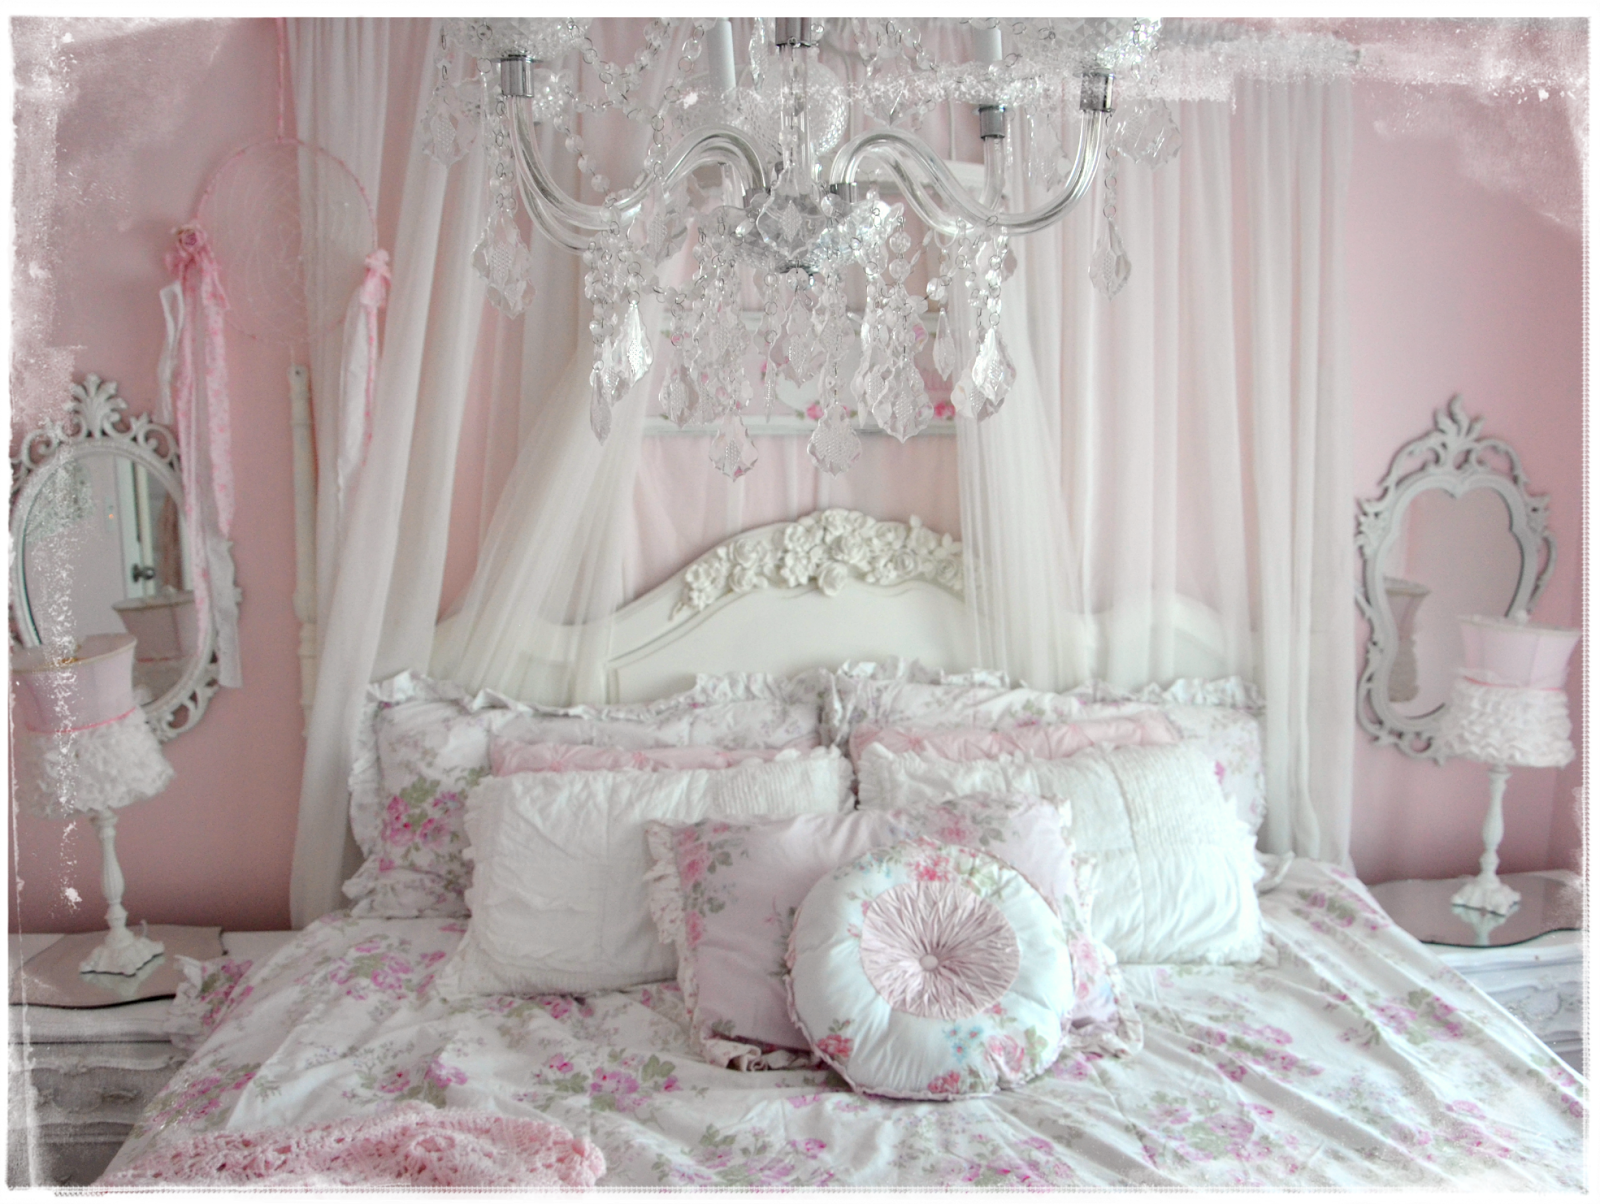 Not So Shabby - Shabby Chic: New Simply Shabby Chic Bedding